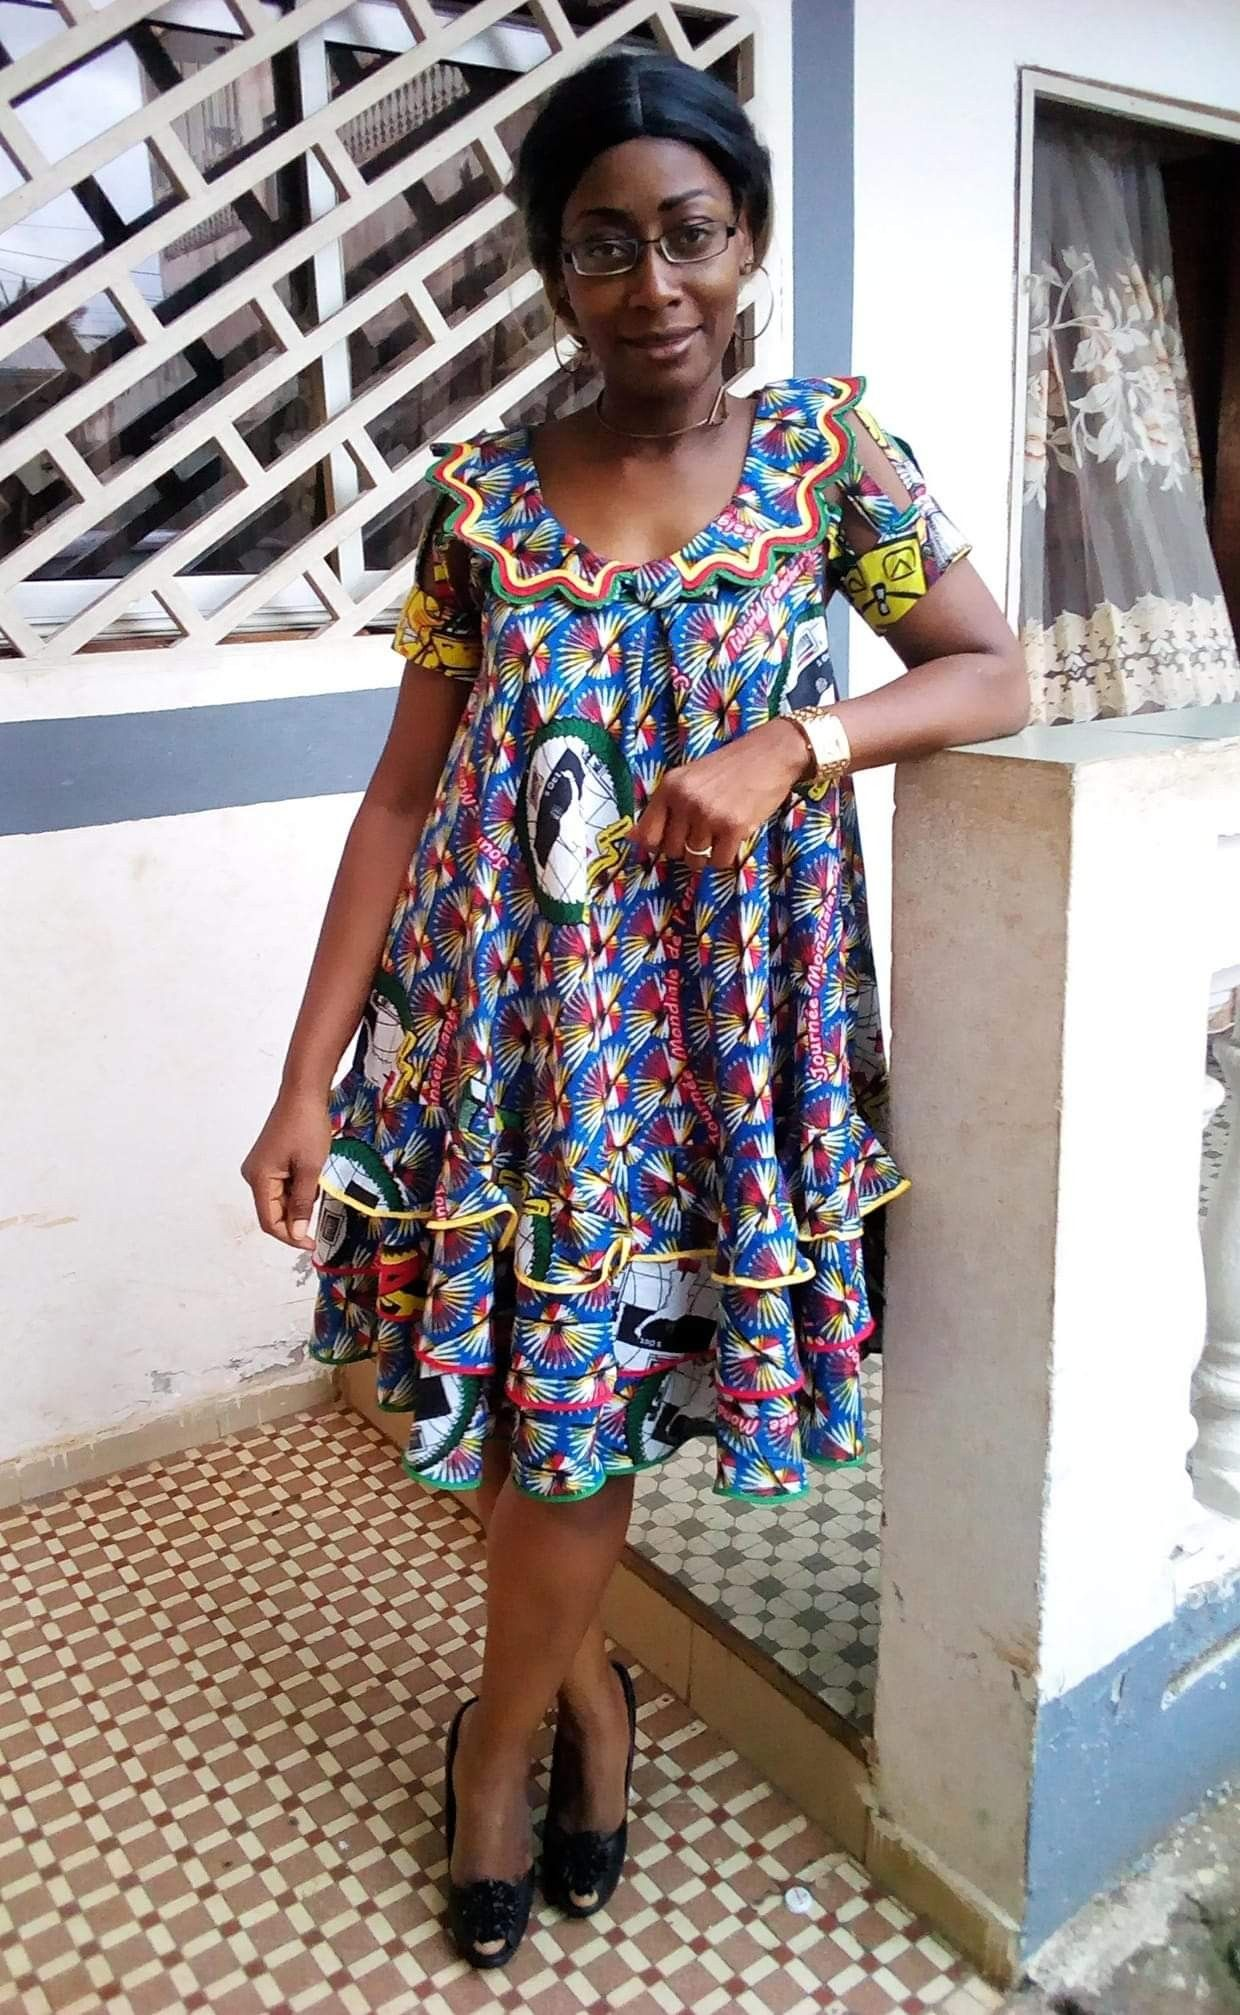 Pin by Amany Touvoli on Robes longue en pagne in 2019 | Robe en pagne africain, Robe africaine ...